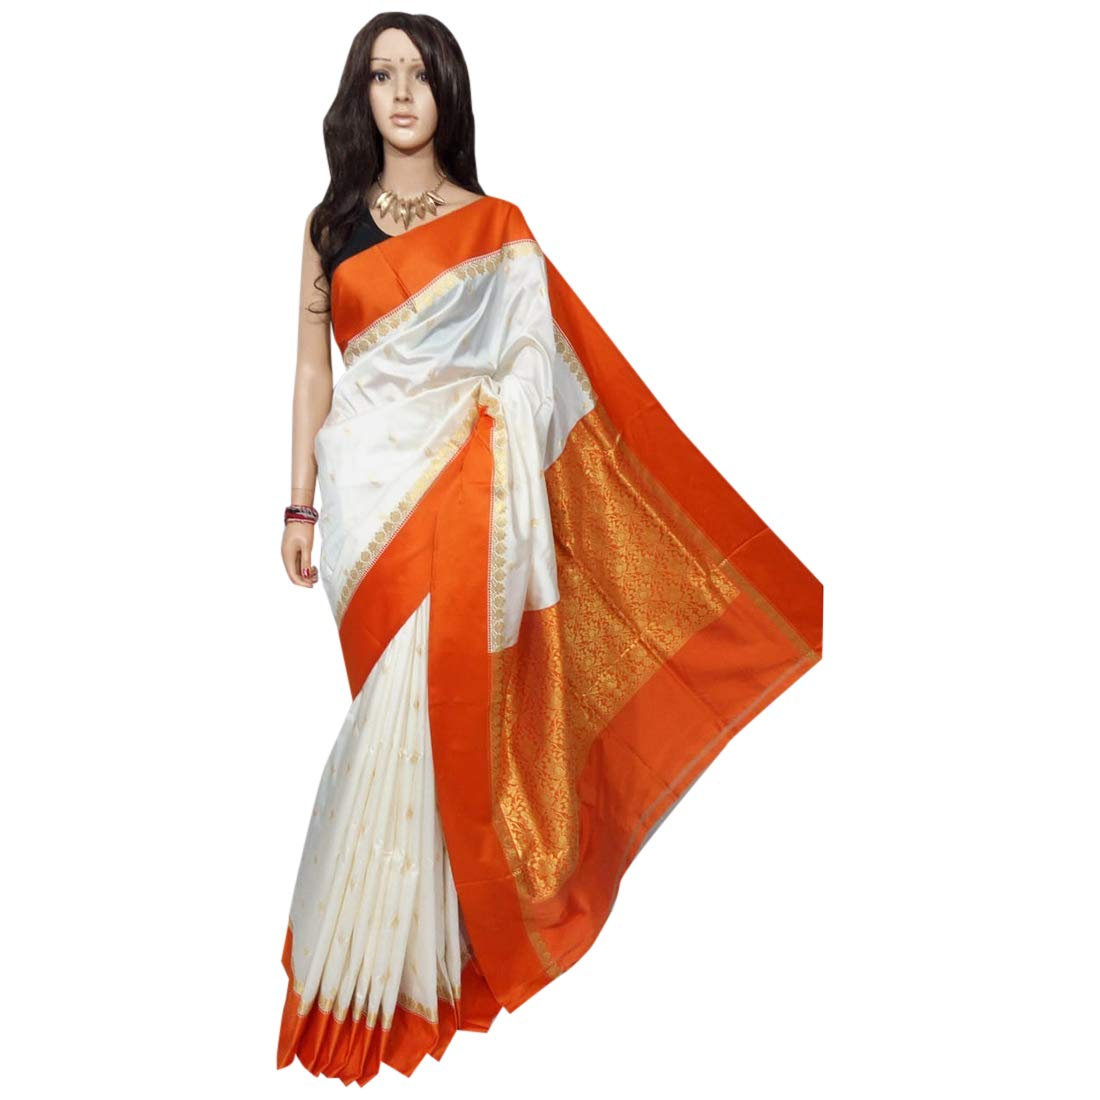 Indian Saree Ethnic White orange Silk Sari Designer Collection Sari Party Formal Women Wear 106a